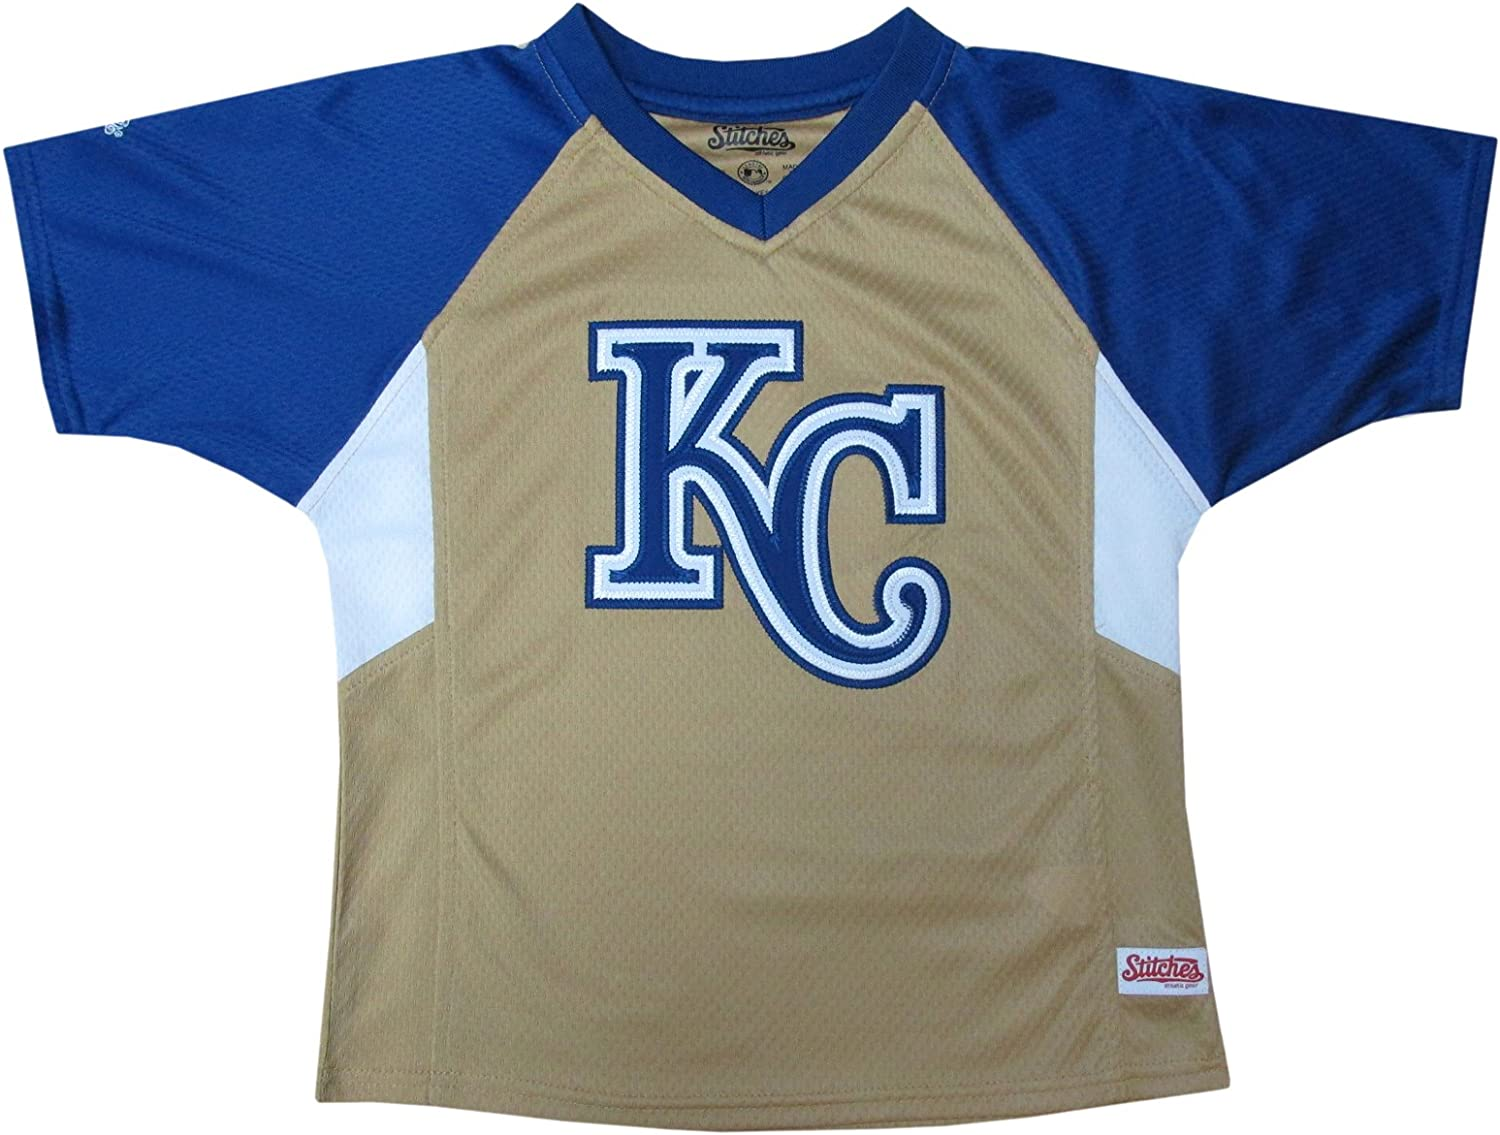 All stores are sold MLB Boy's Colorblocked Raglan Inexpensive V-Neck Shirt